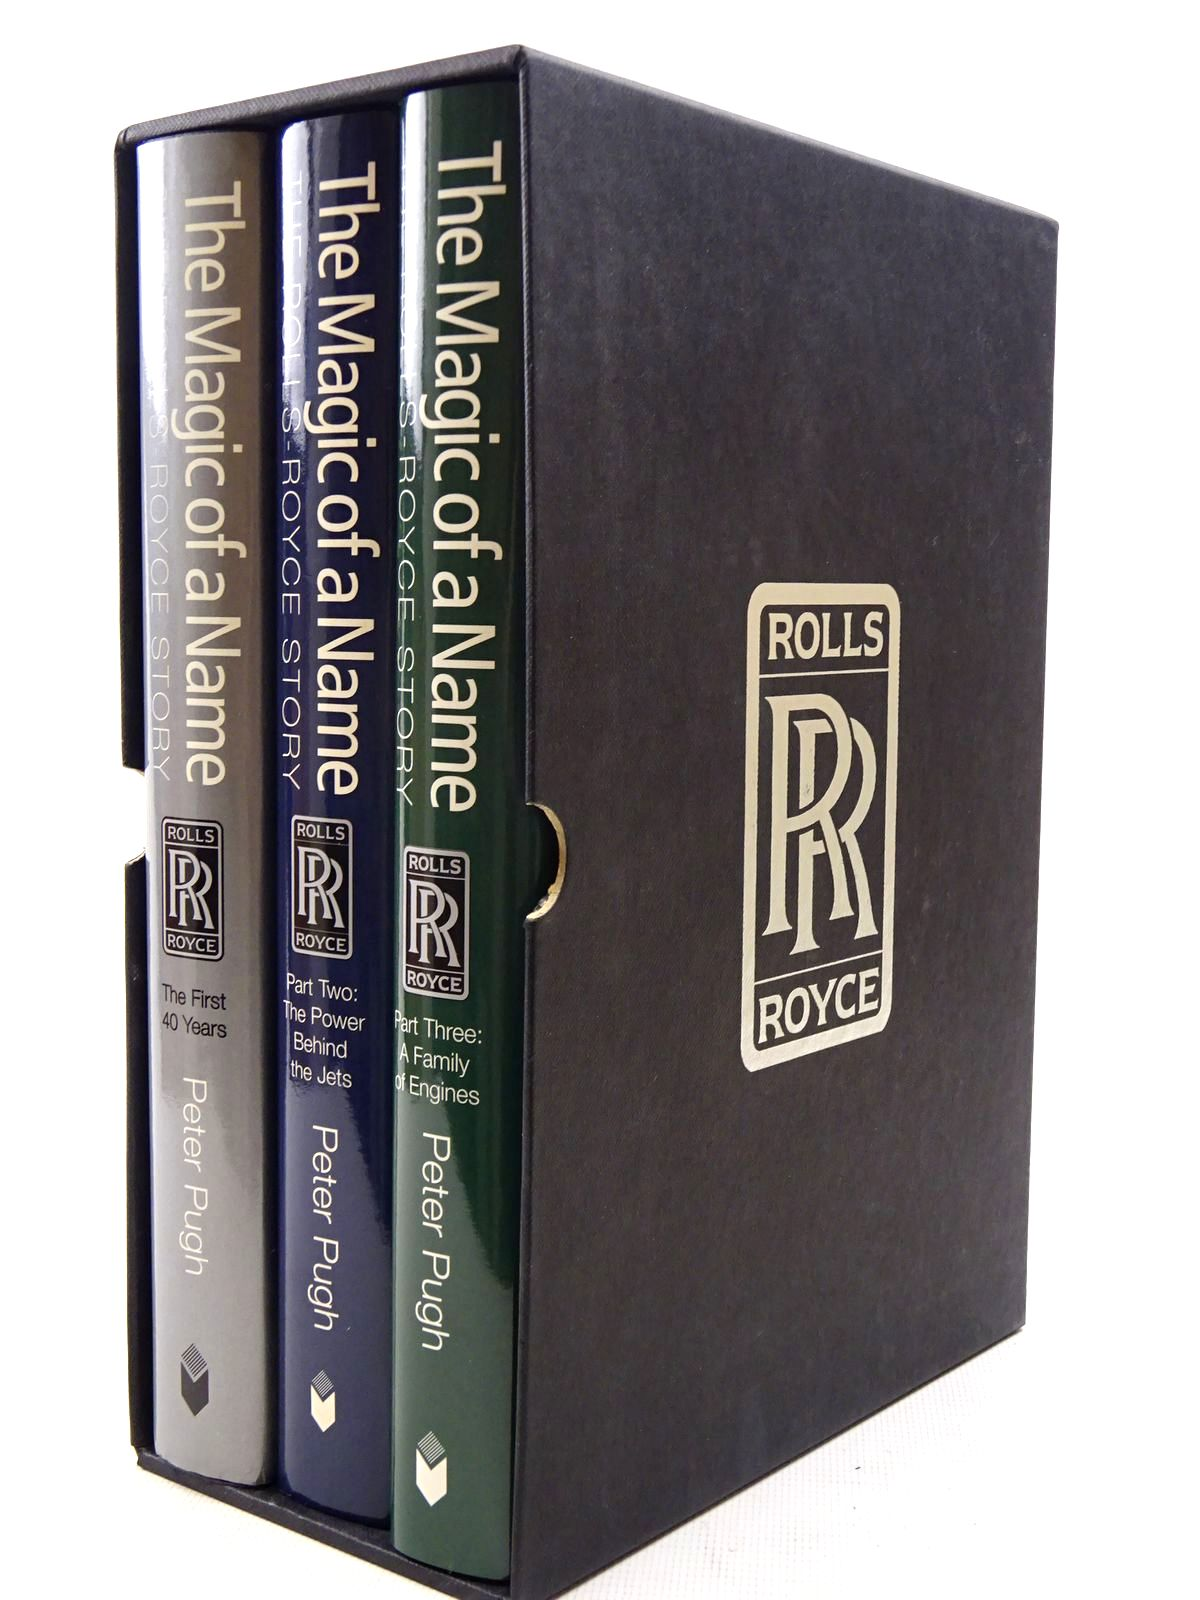 Photo of THE MAGIC OF A NAME: THE ROLLS-ROYCE STORY 3 VOLUMES written by Pugh, Peter published by Icon Books (STOCK CODE: 2126072)  for sale by Stella & Rose's Books